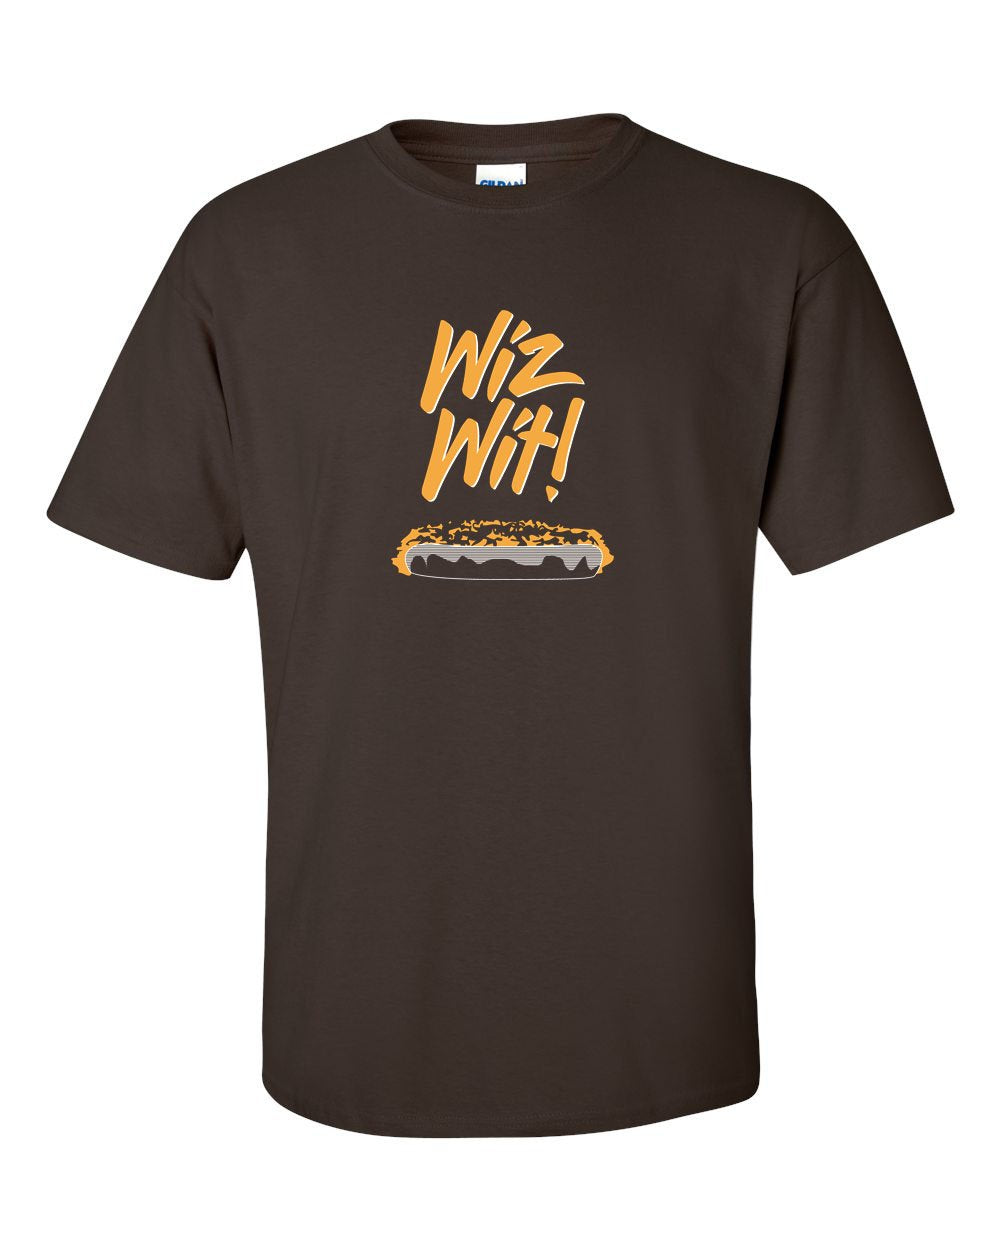 Wiz Wit Mens/Unisex T-Shirt